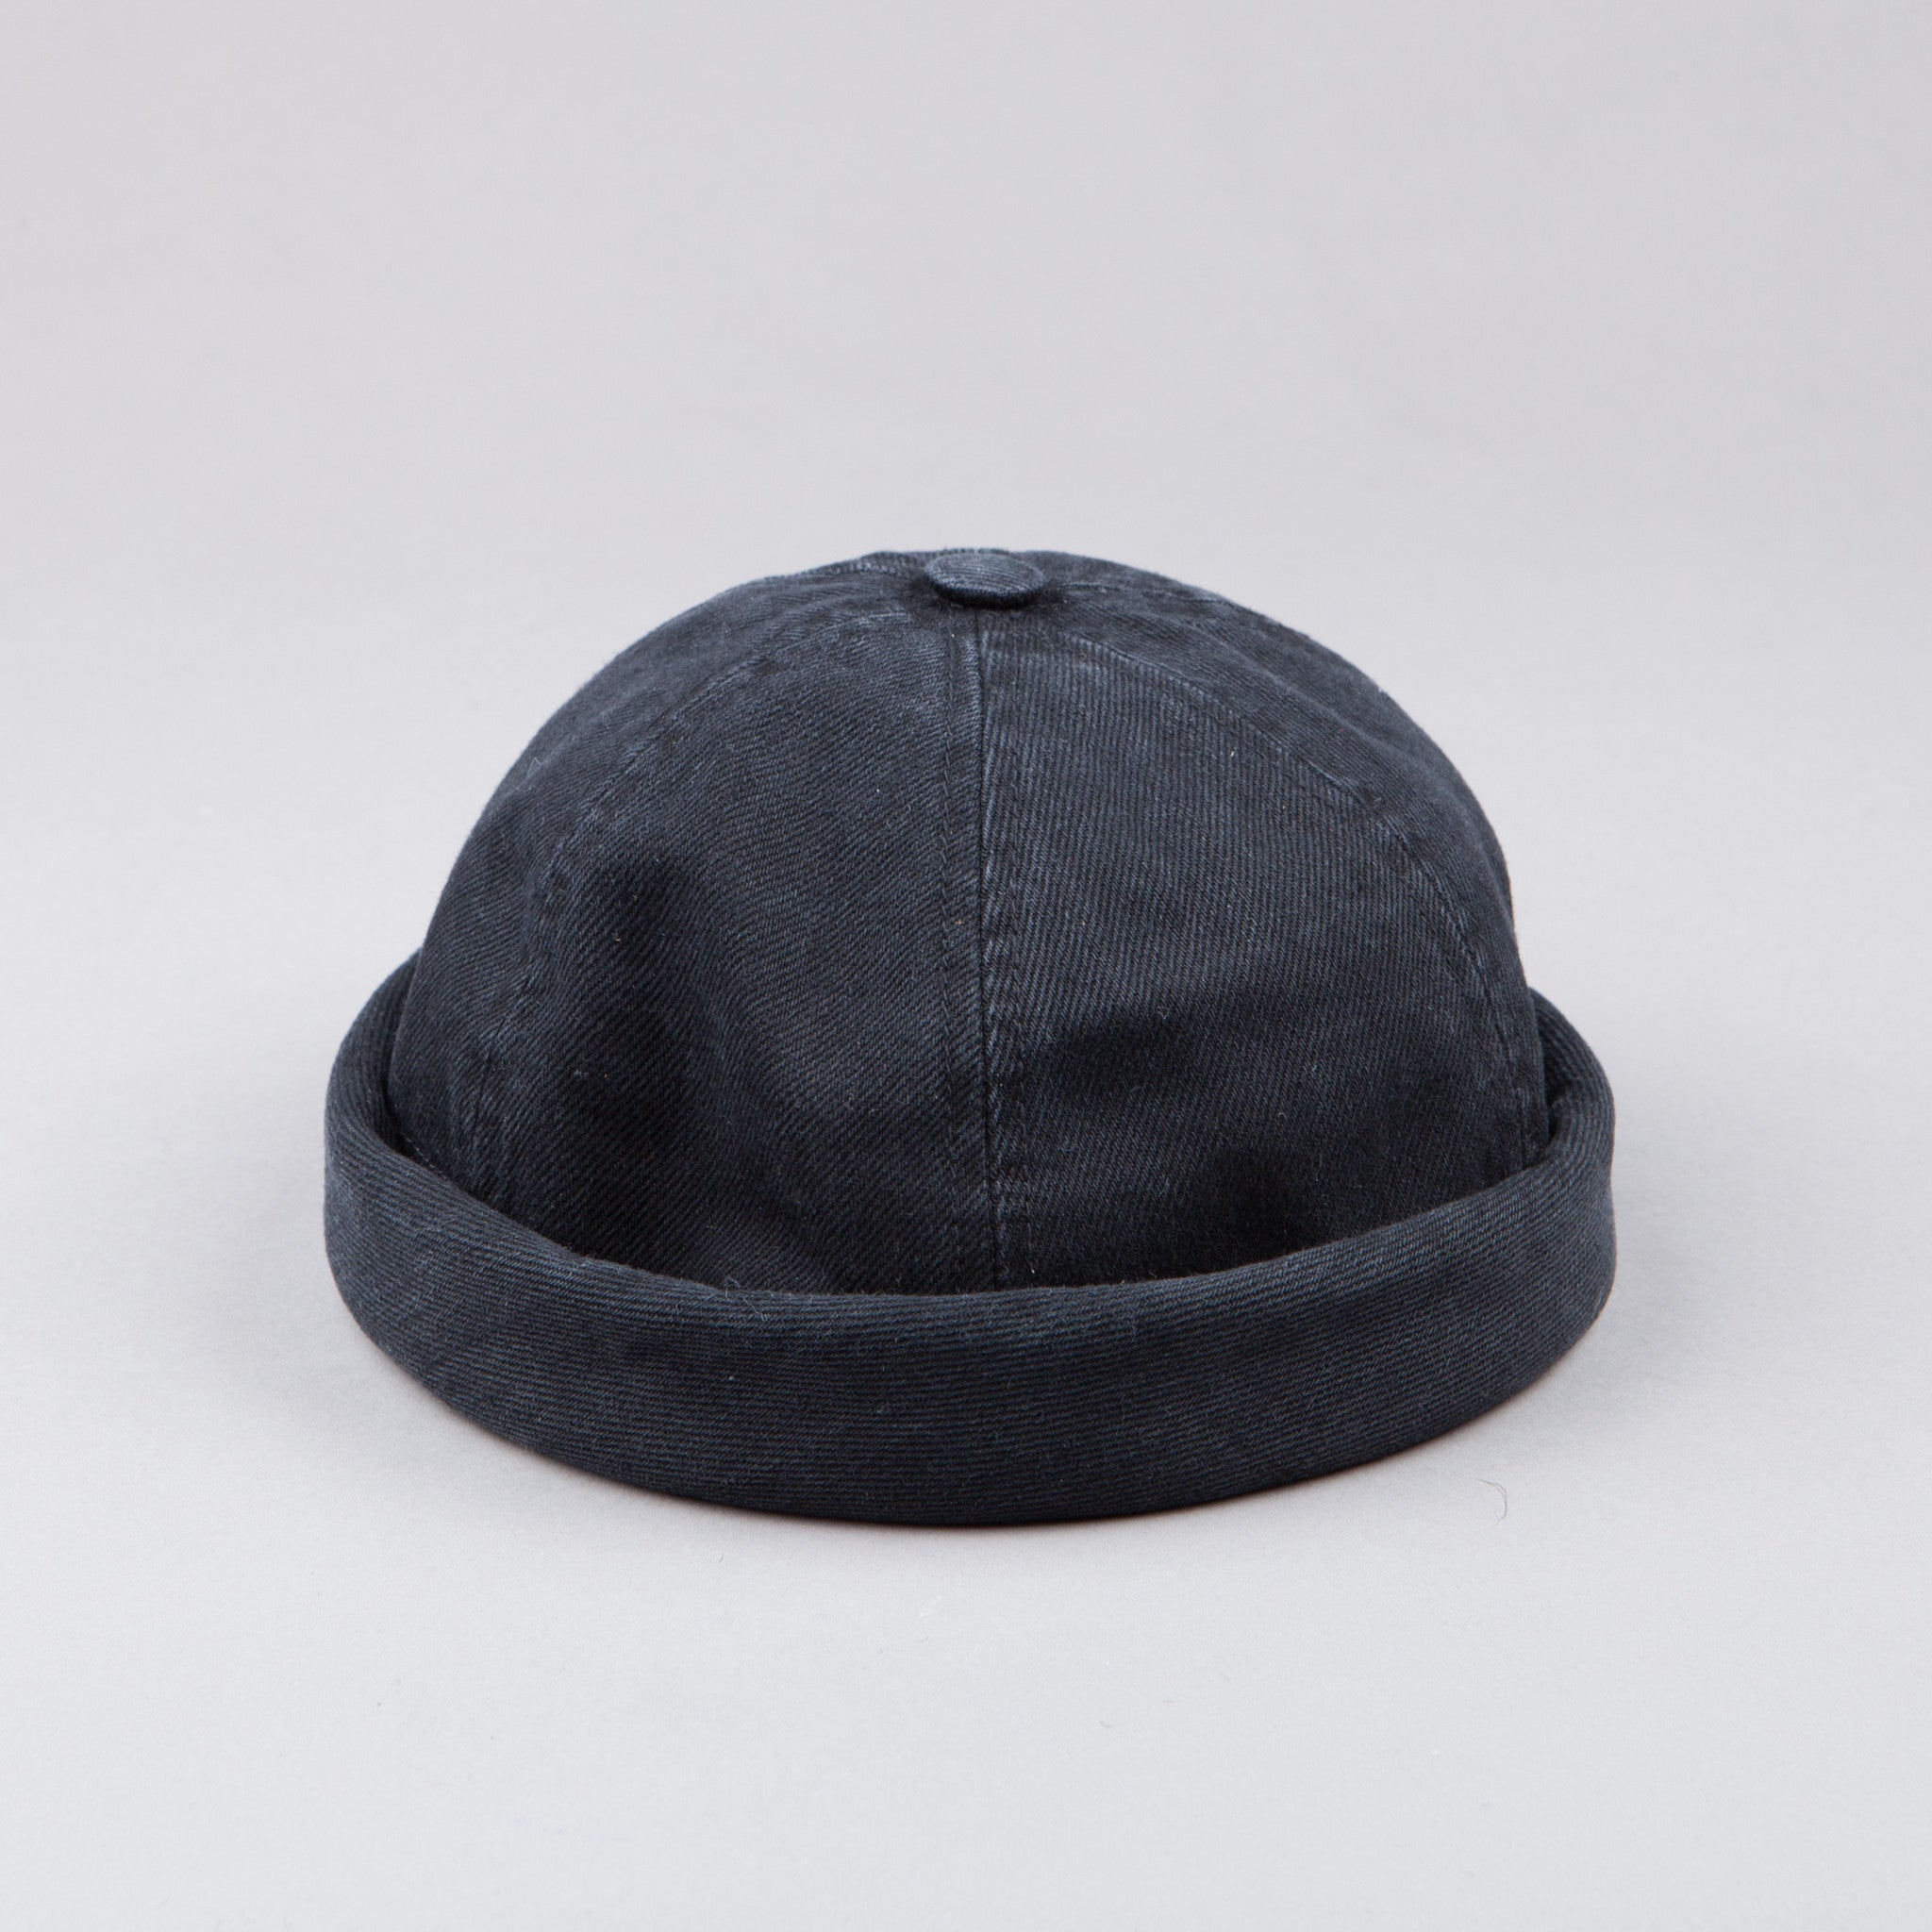 Béton Ciré Miki Hat in Washed Black